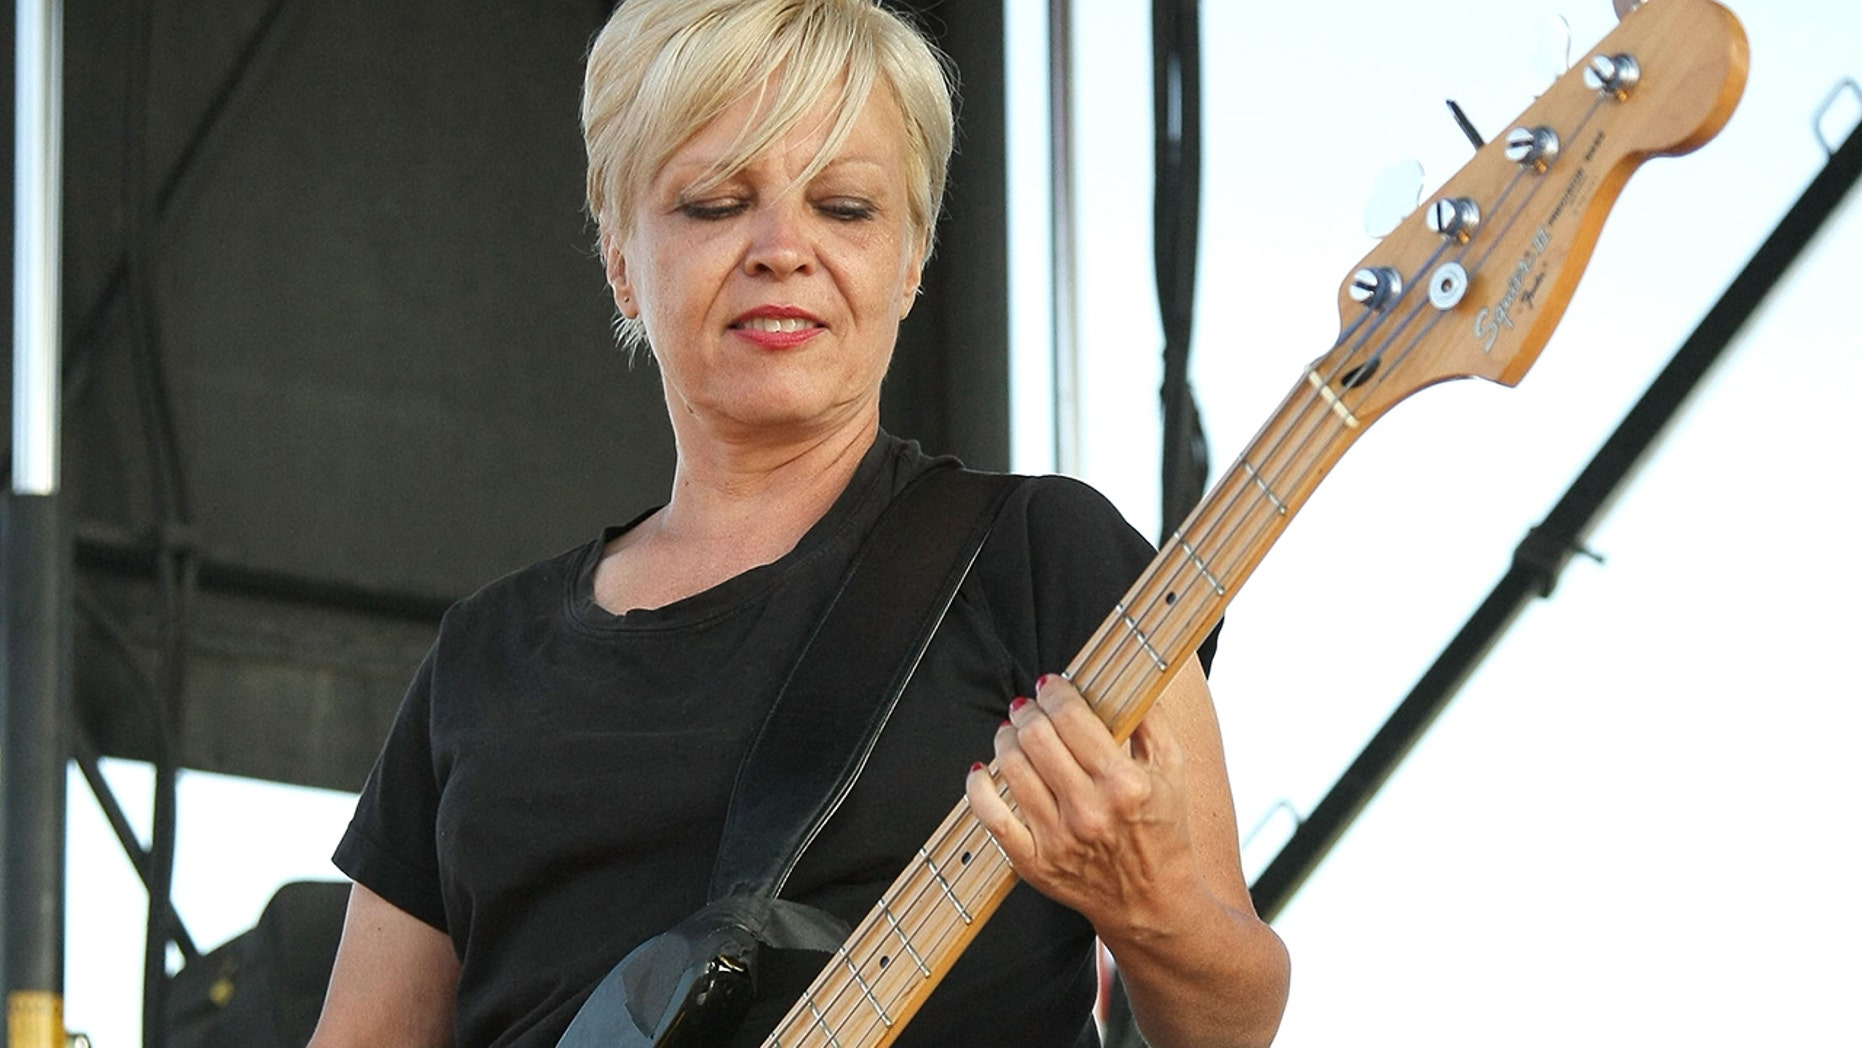 Germs bassist Lorna Doom has died